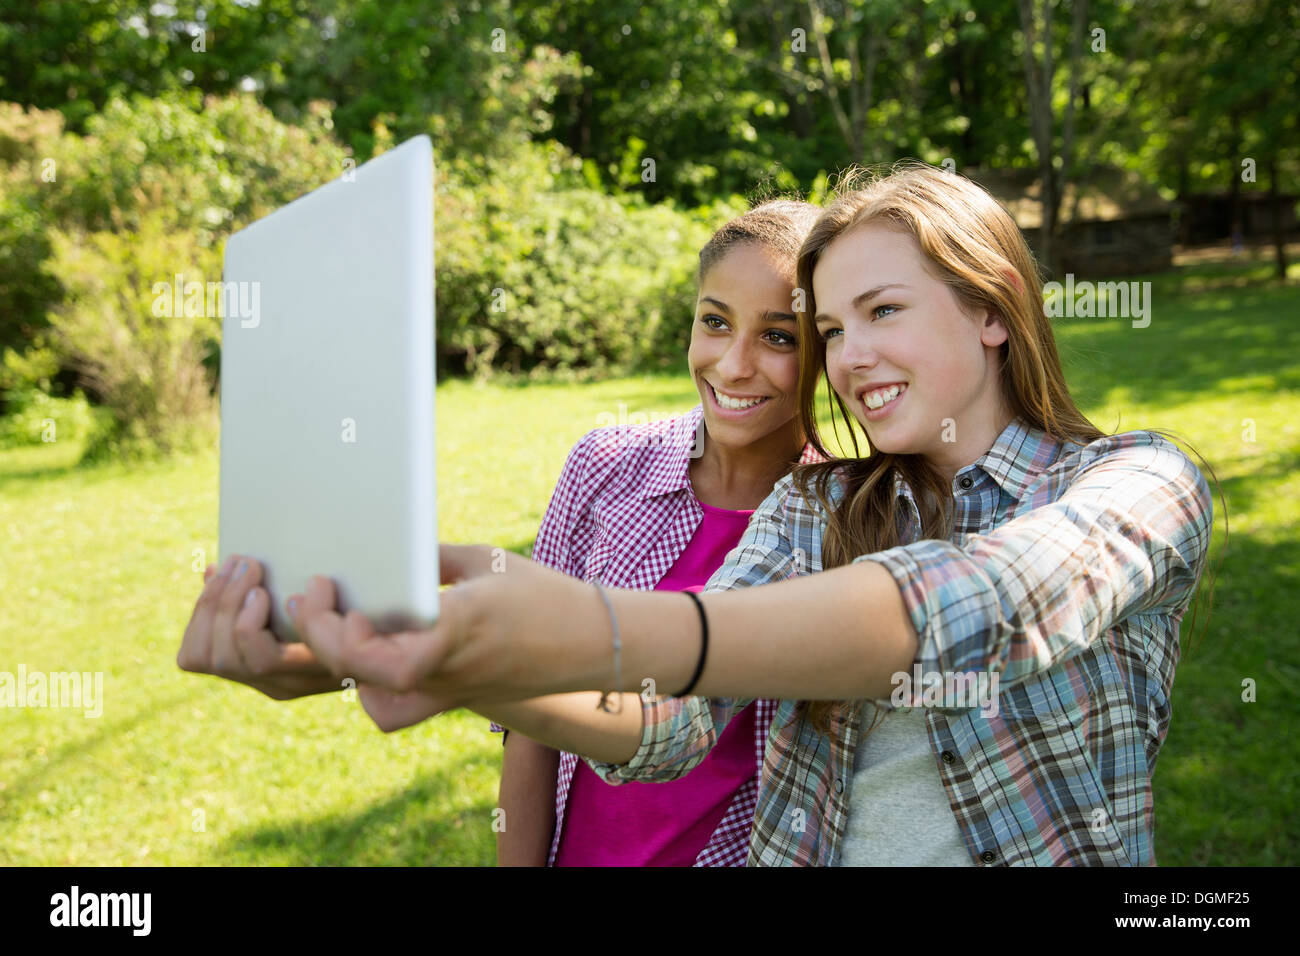 Two girls sitting outdoors on a bench, using a digital tablet. Holding it out at arm's length. - Stock Image